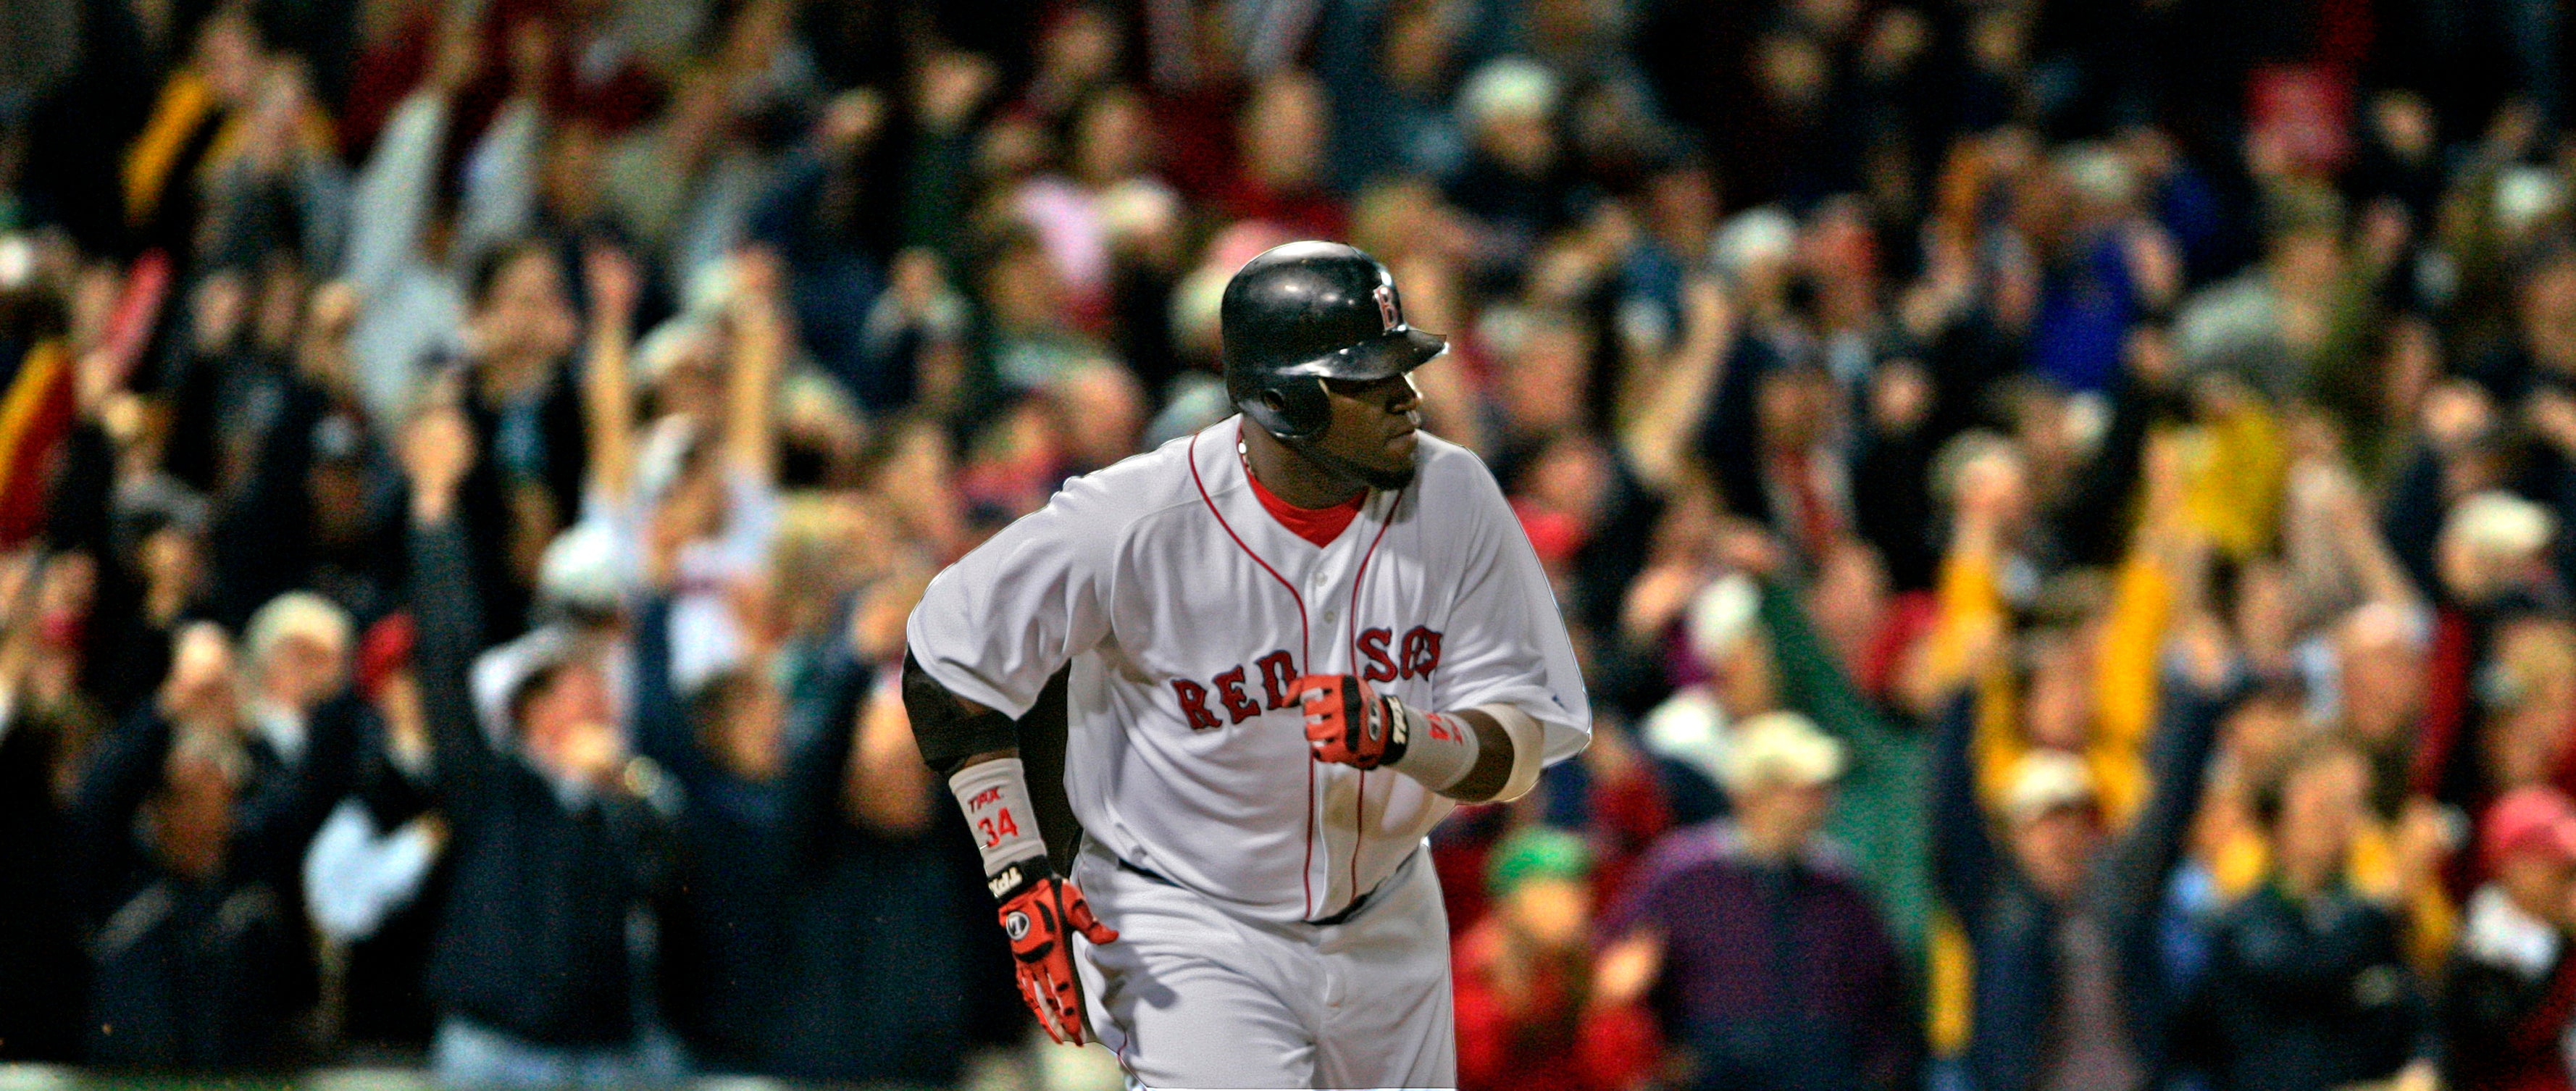 David Ortiz watches one go during a game in 2005.